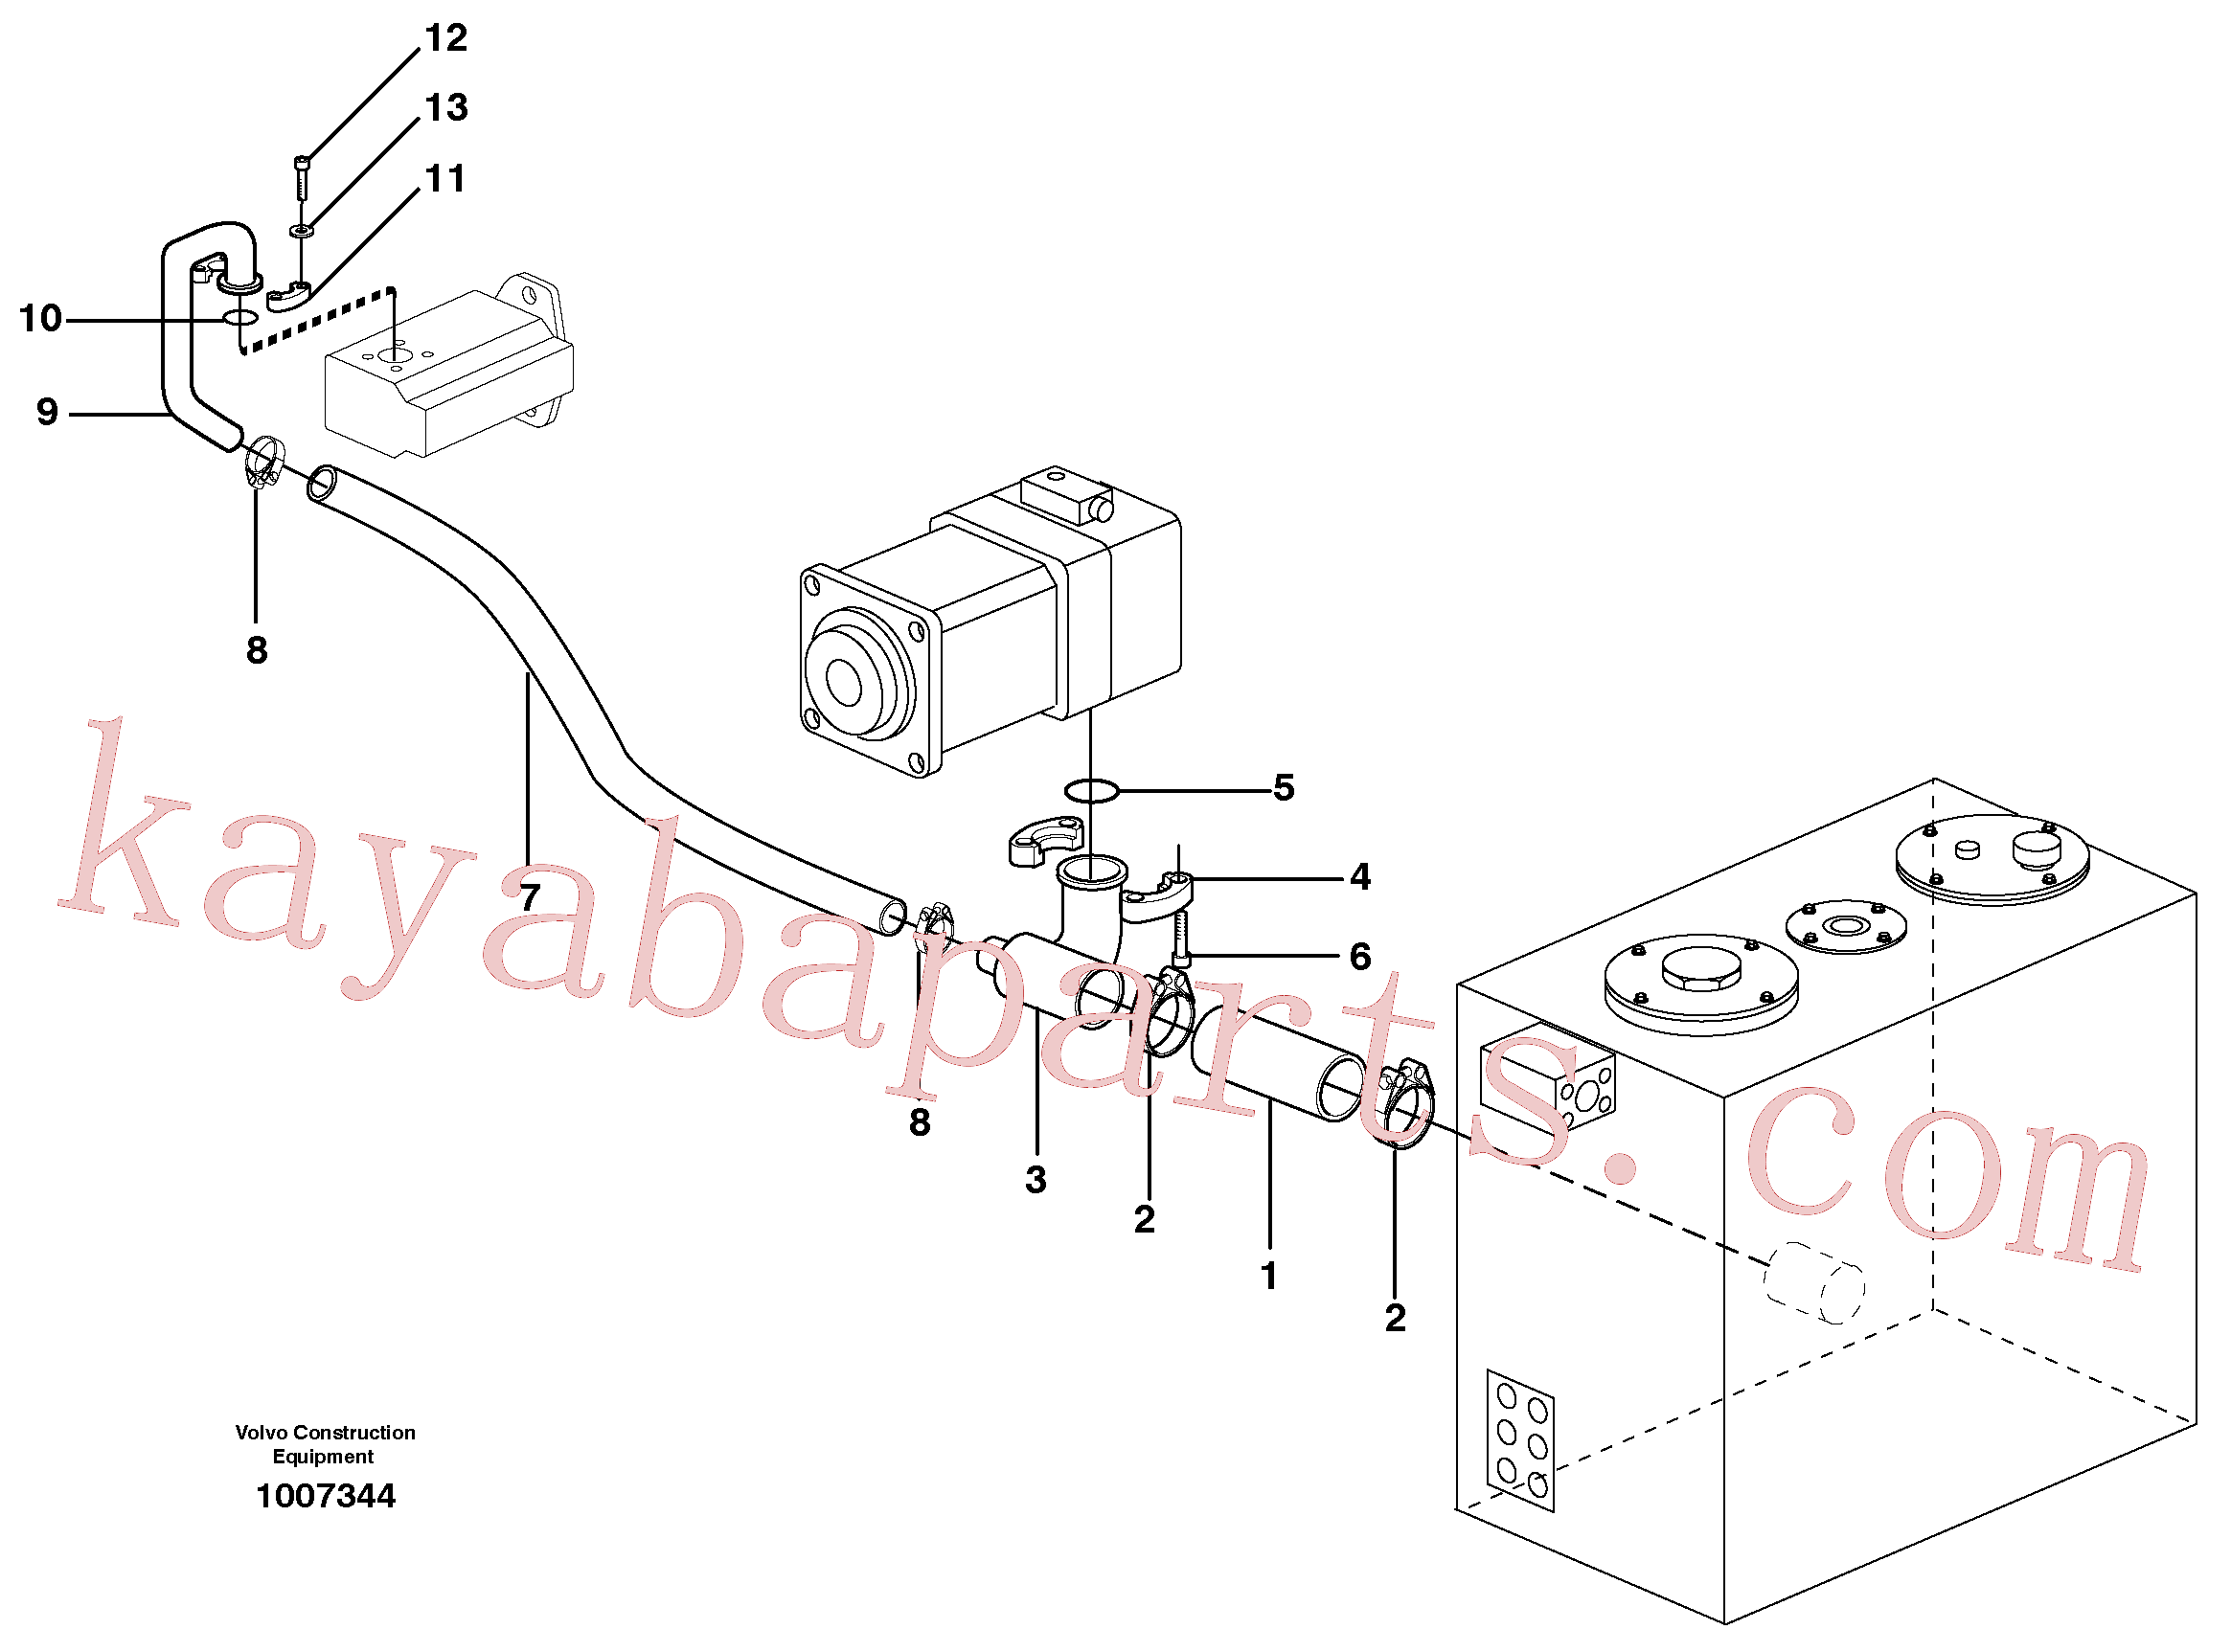 VOE993327 for Volvo Hydraulic system suction lines(1007344 assembly)